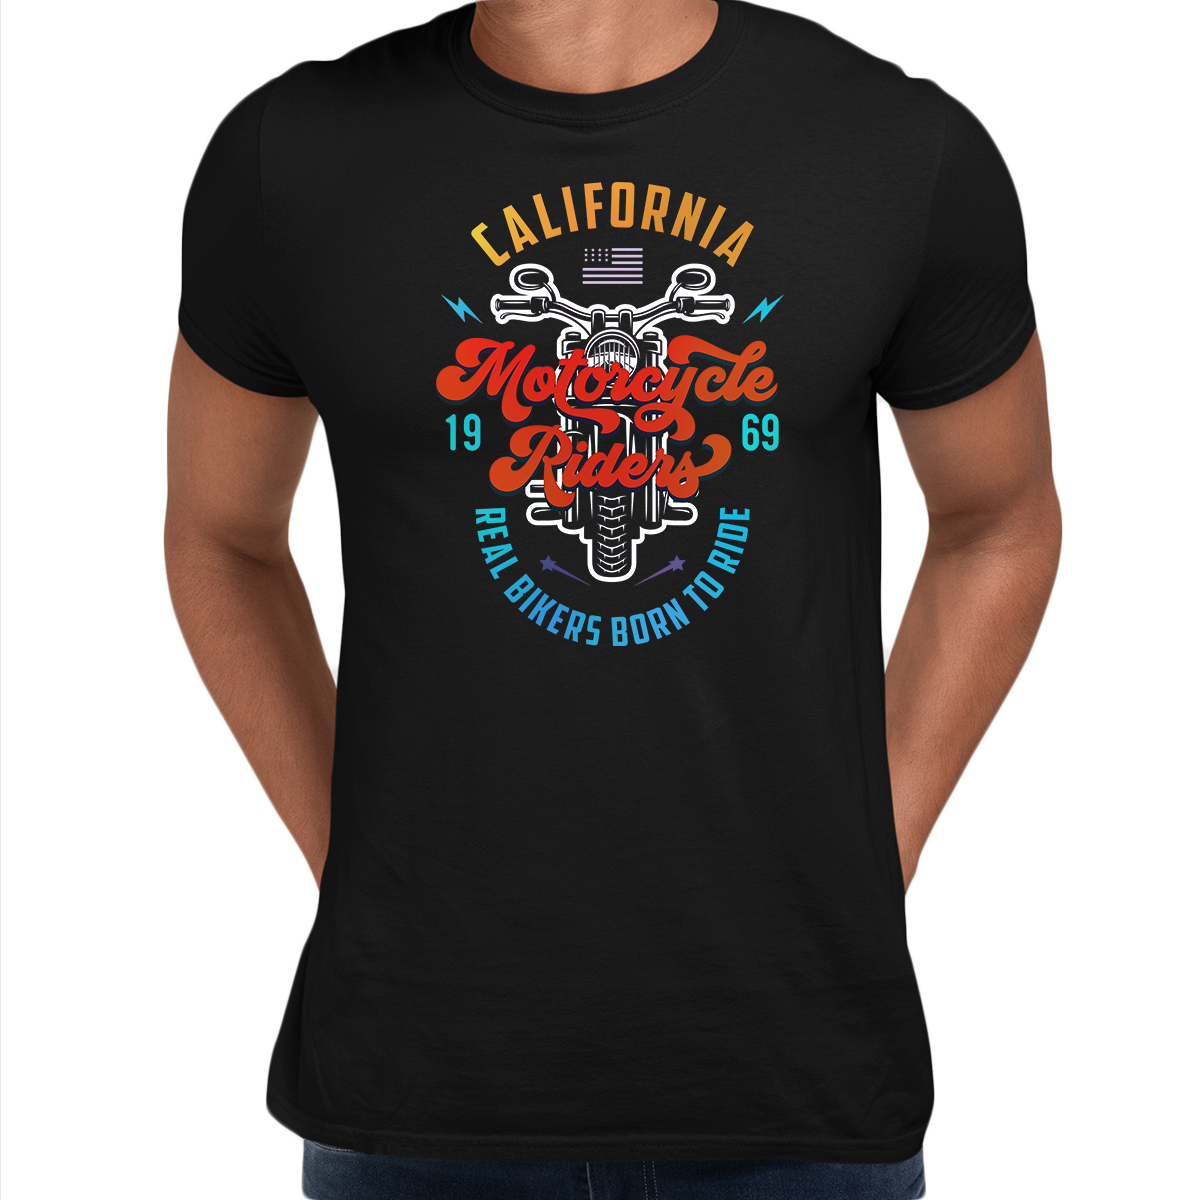 PK-98395-California Motorcycle Riders Real Bikers Born to Ride 1969 Black